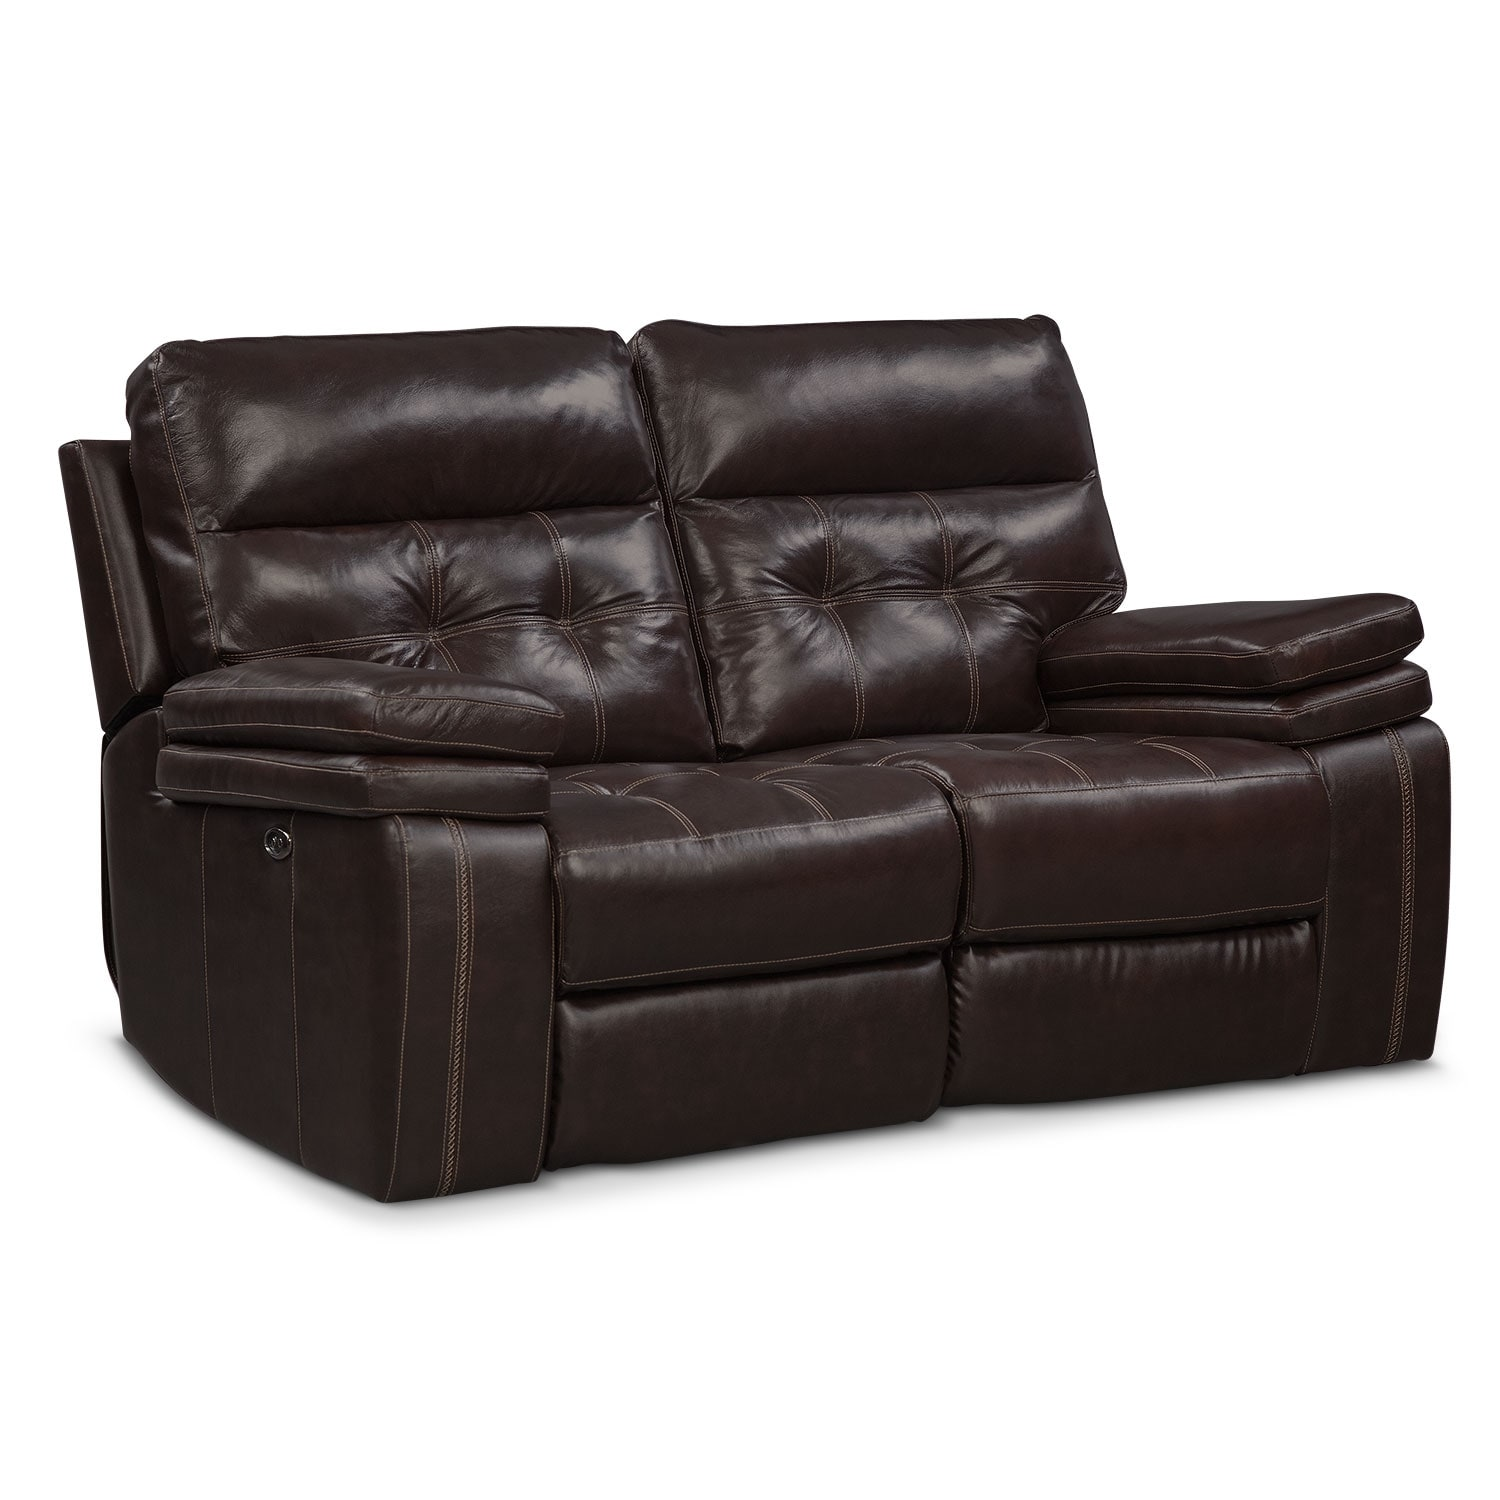 Living Room Furniture - Brisco Power Reclining Loveseat